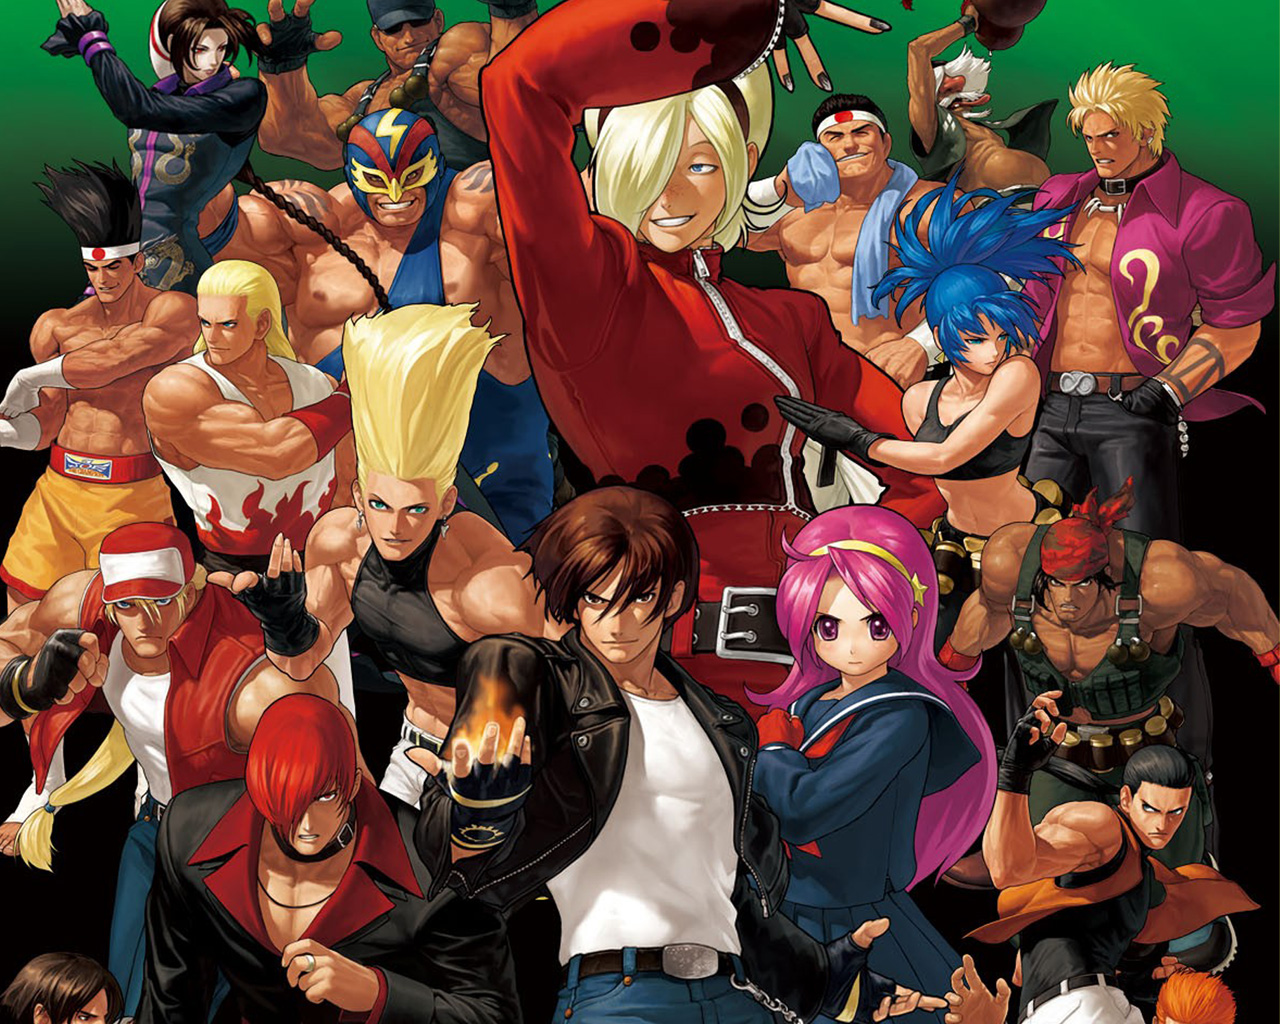 Free The King of Fighters XII Wallpaper in 1280x1024